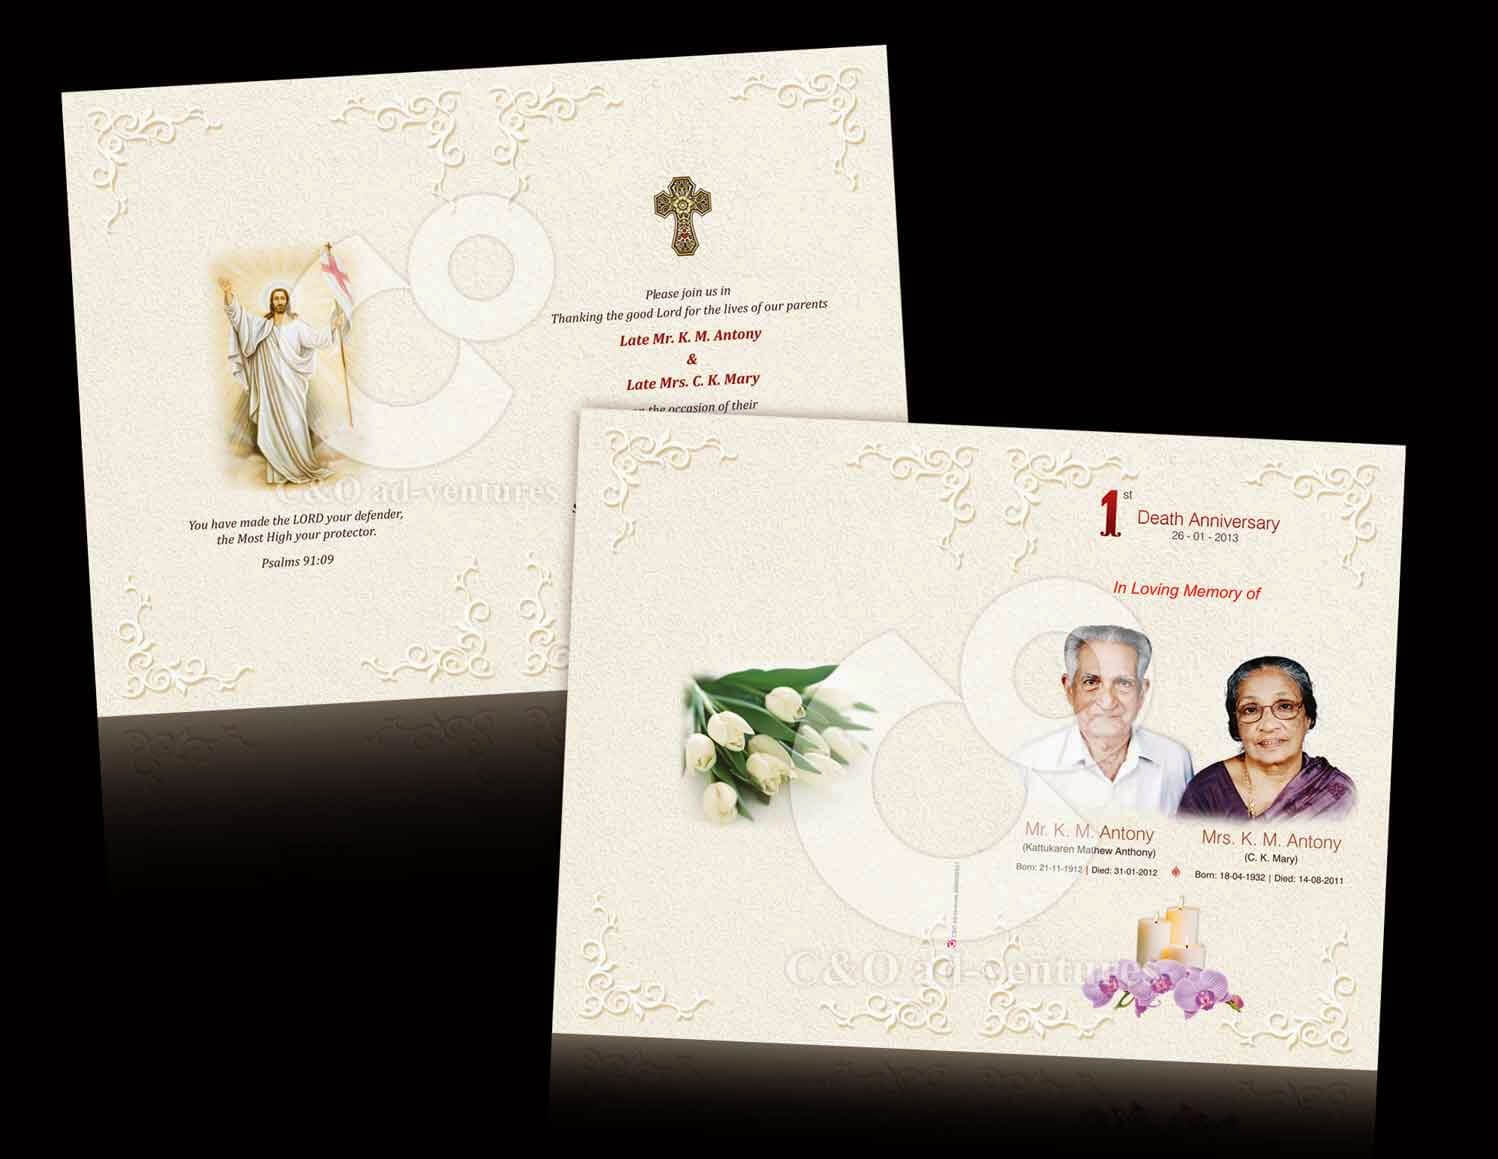 Death Anniversary Cards Templates ] - Card Templates Free Regarding Death Anniversary Cards Templates